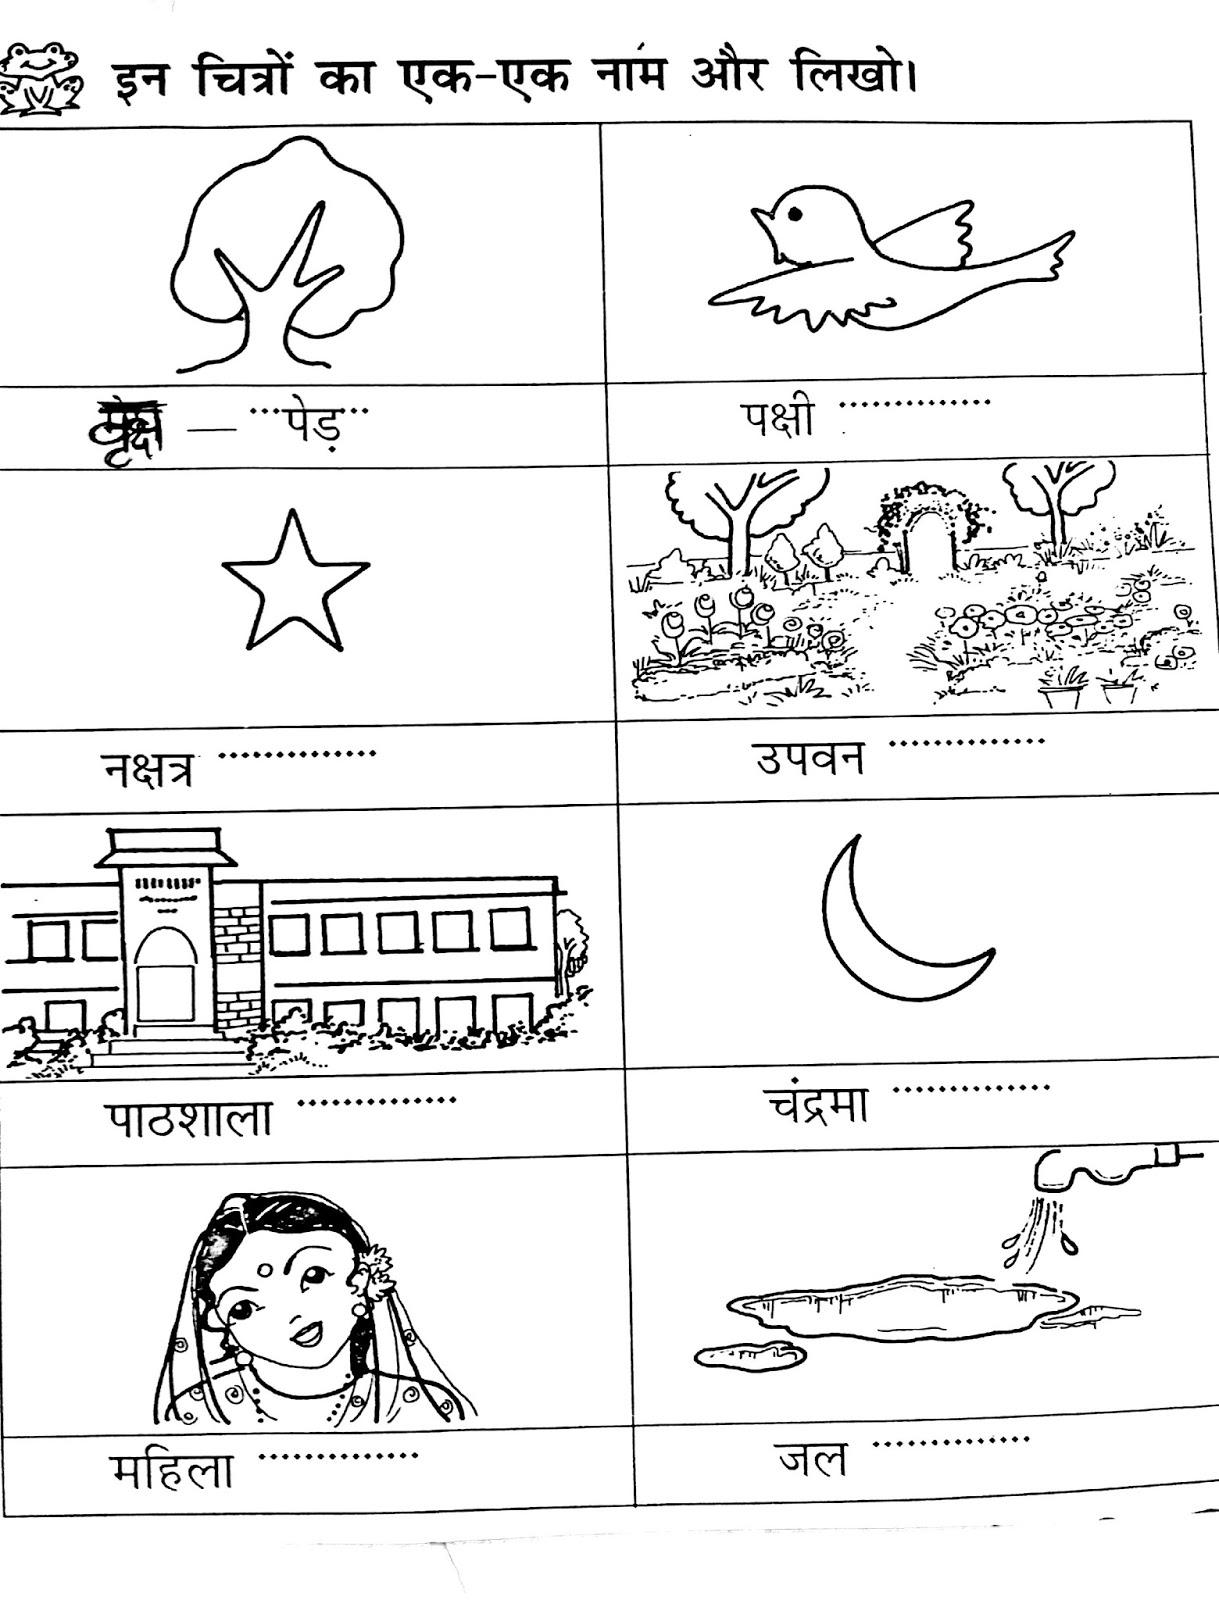 Hindi Grammar Work Sheet Collection For Classes 5 6 7 Amp 8 Synonyms Work Sheets For Classes 3